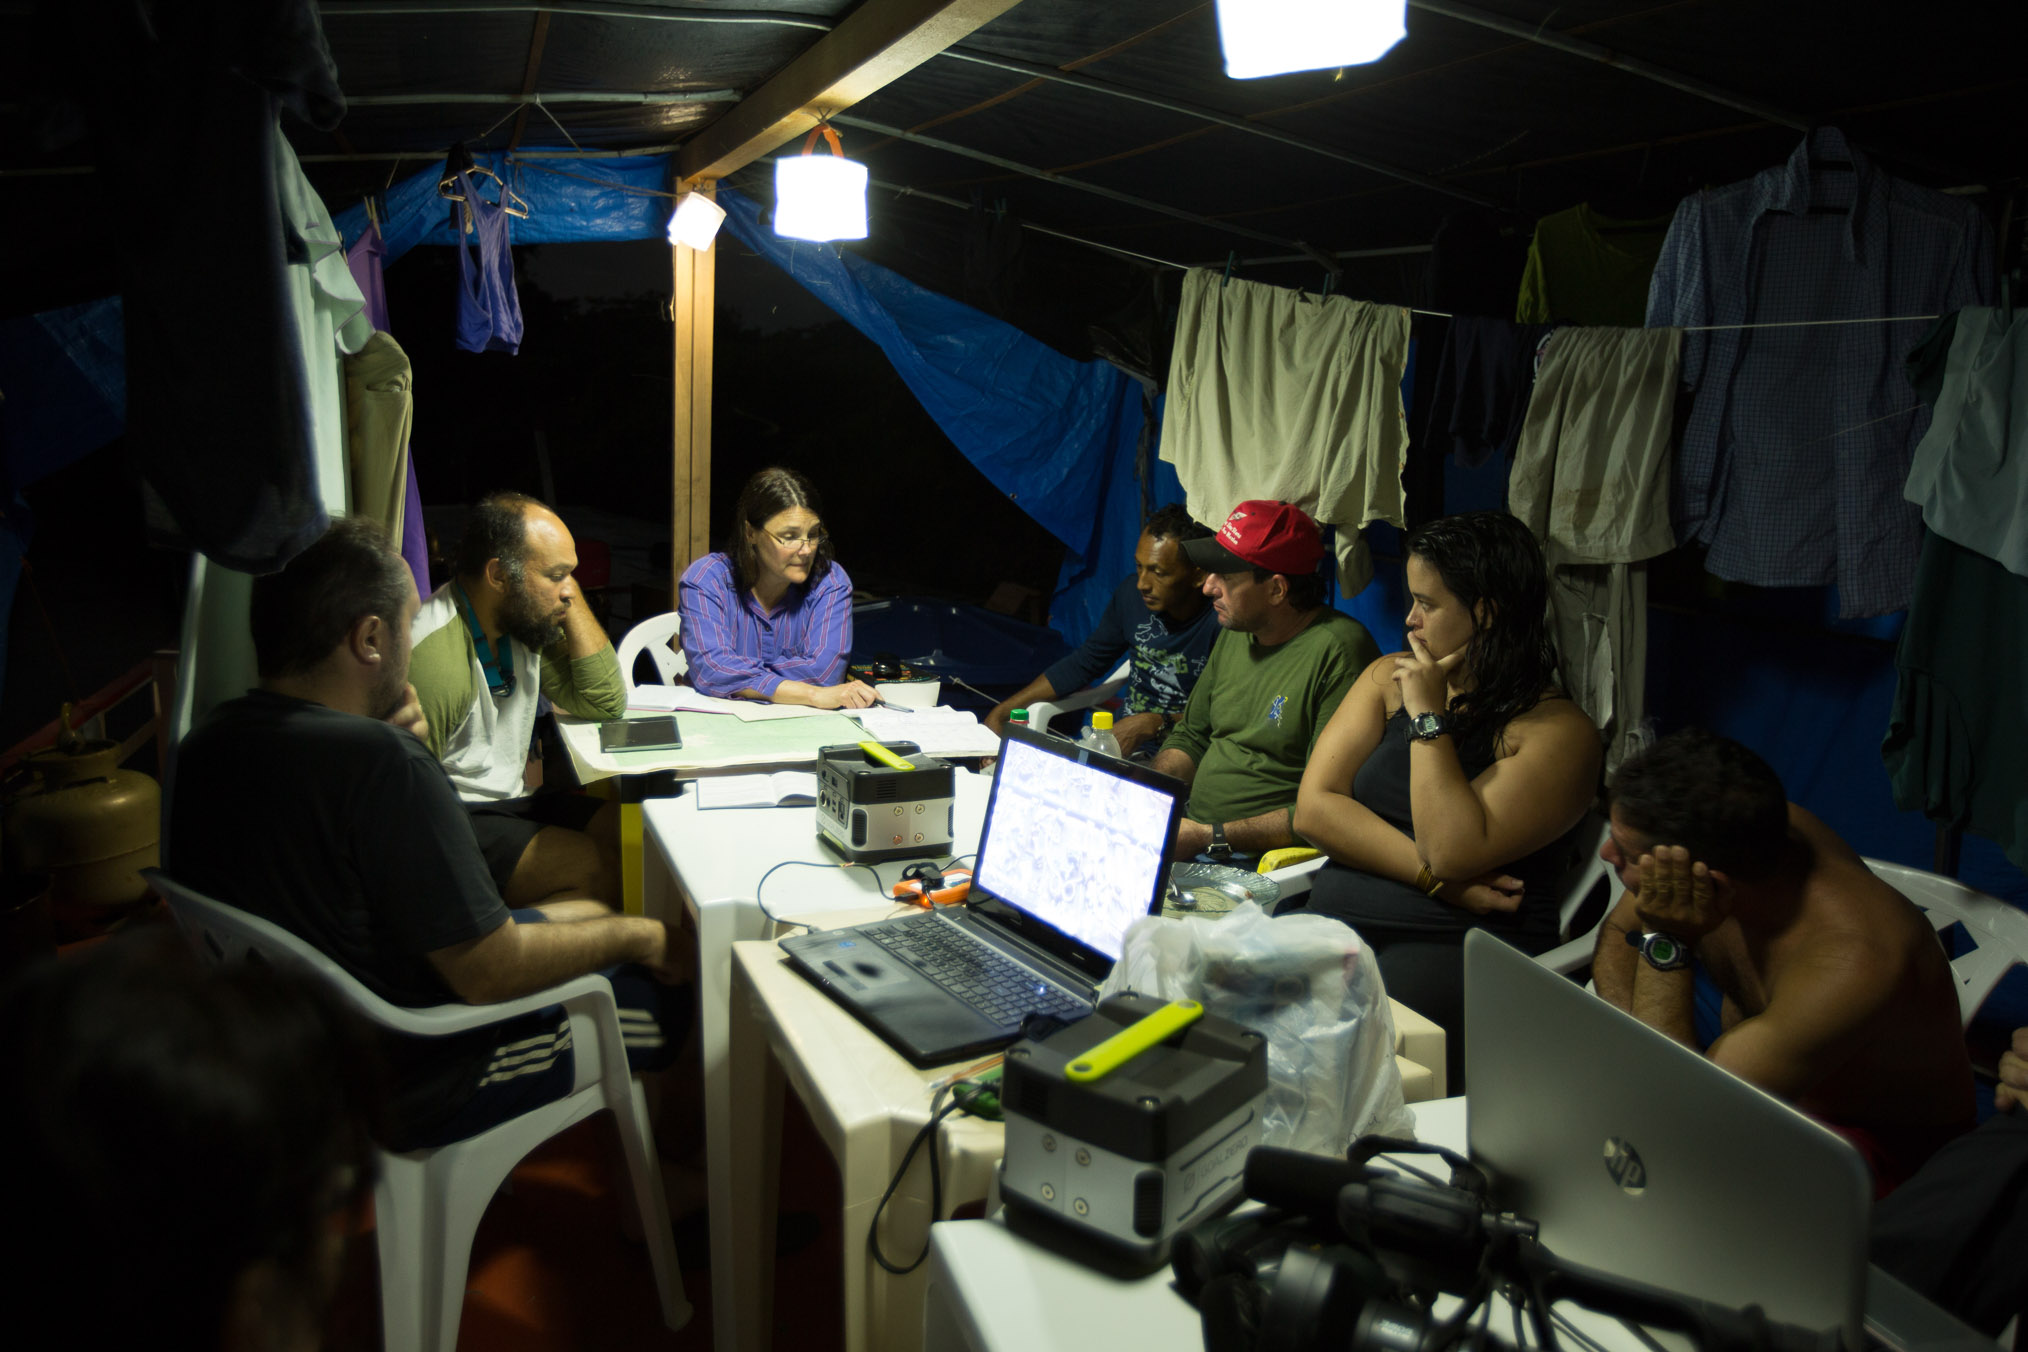 Surrounded by their drying laundry, the expedition team gathers for an evening meeting illuminated by solar lanterns on the second level of the houseboat.